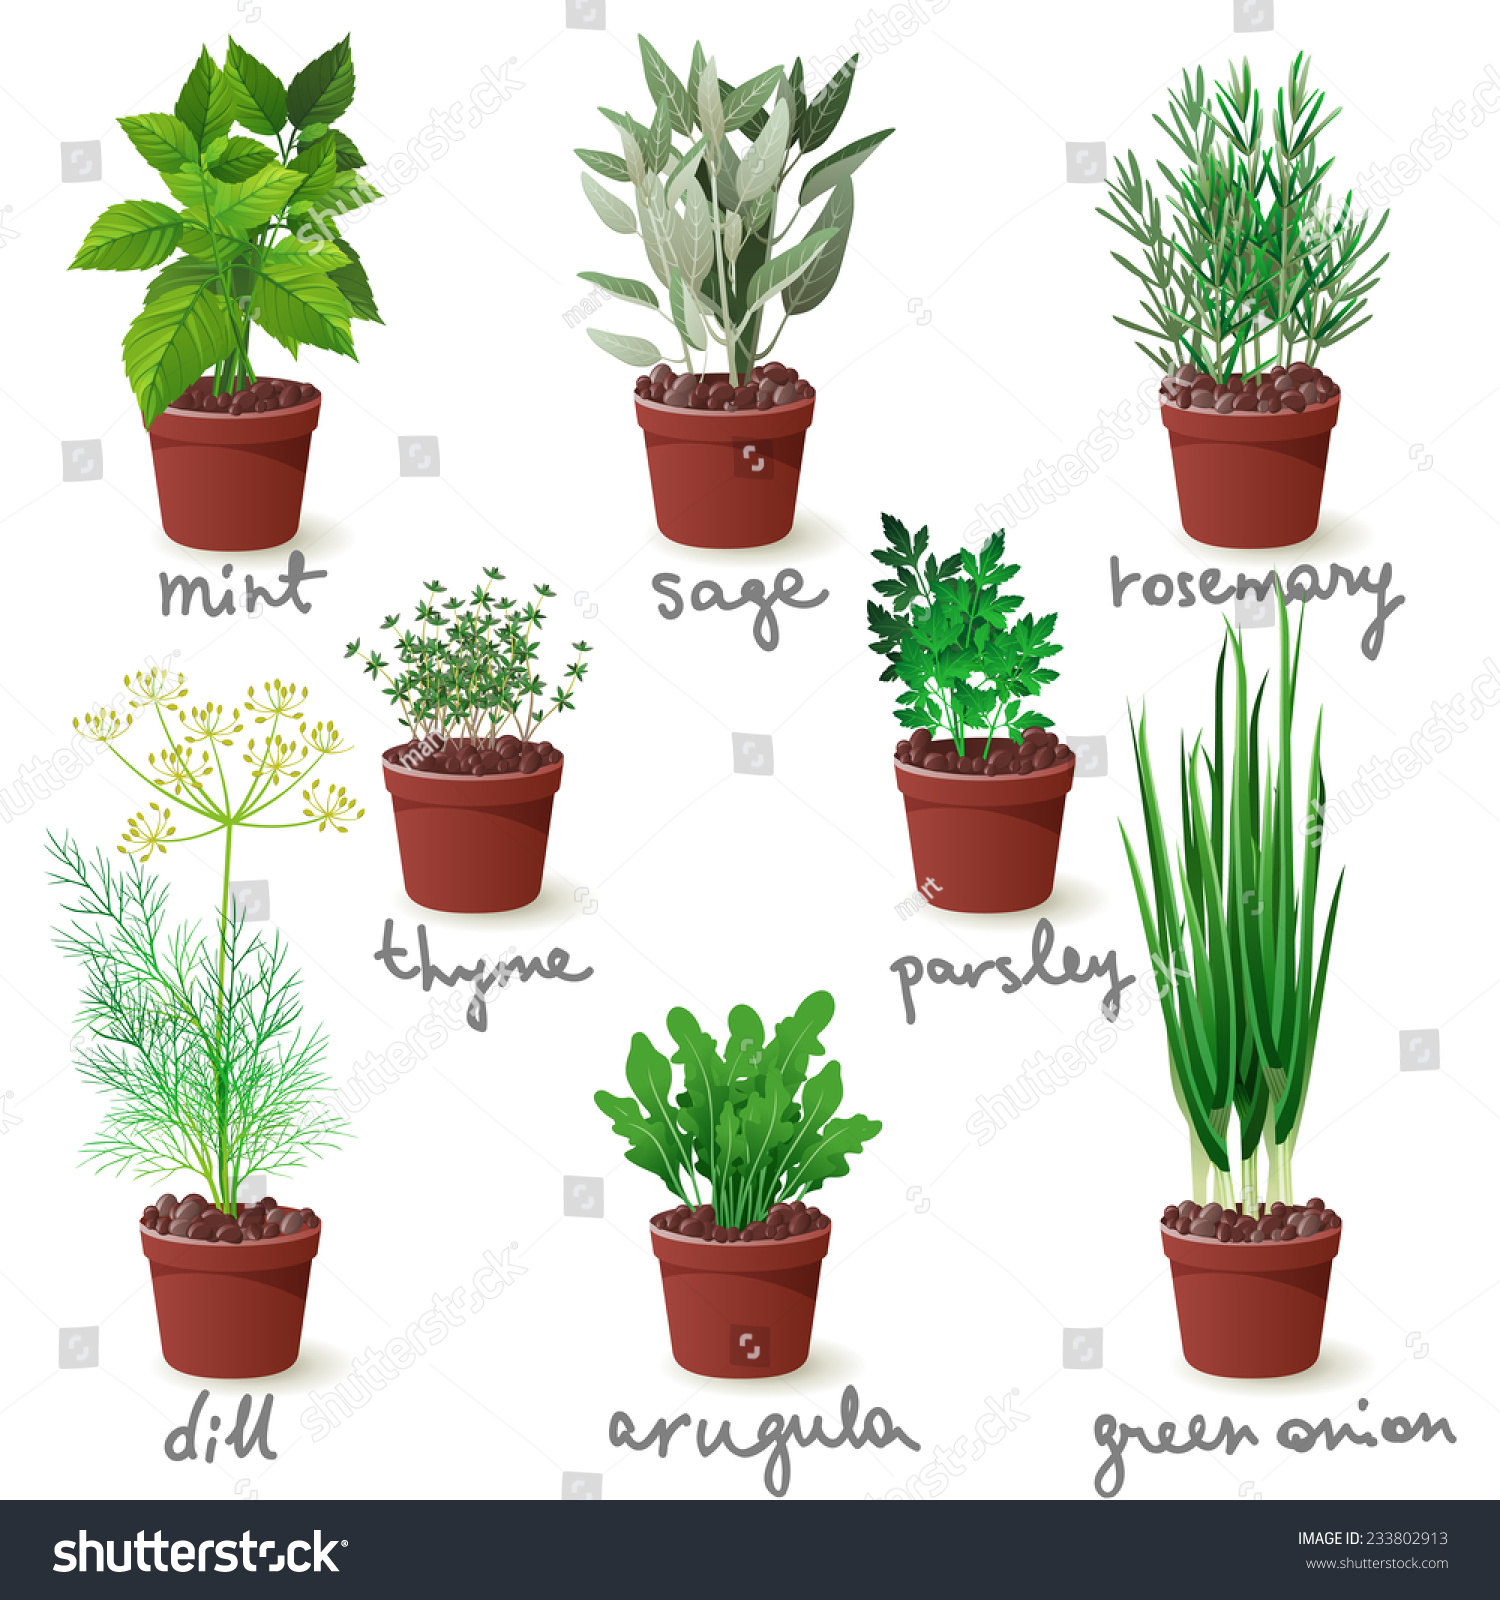 Different herbs royalty free stock image image 16265346 - Different Herbs Royalty Free Stock Photos Image 11487658 Wallpaper Image Gallery Different Herbs Wallpaper Gallery Image Gallery Different Herbs